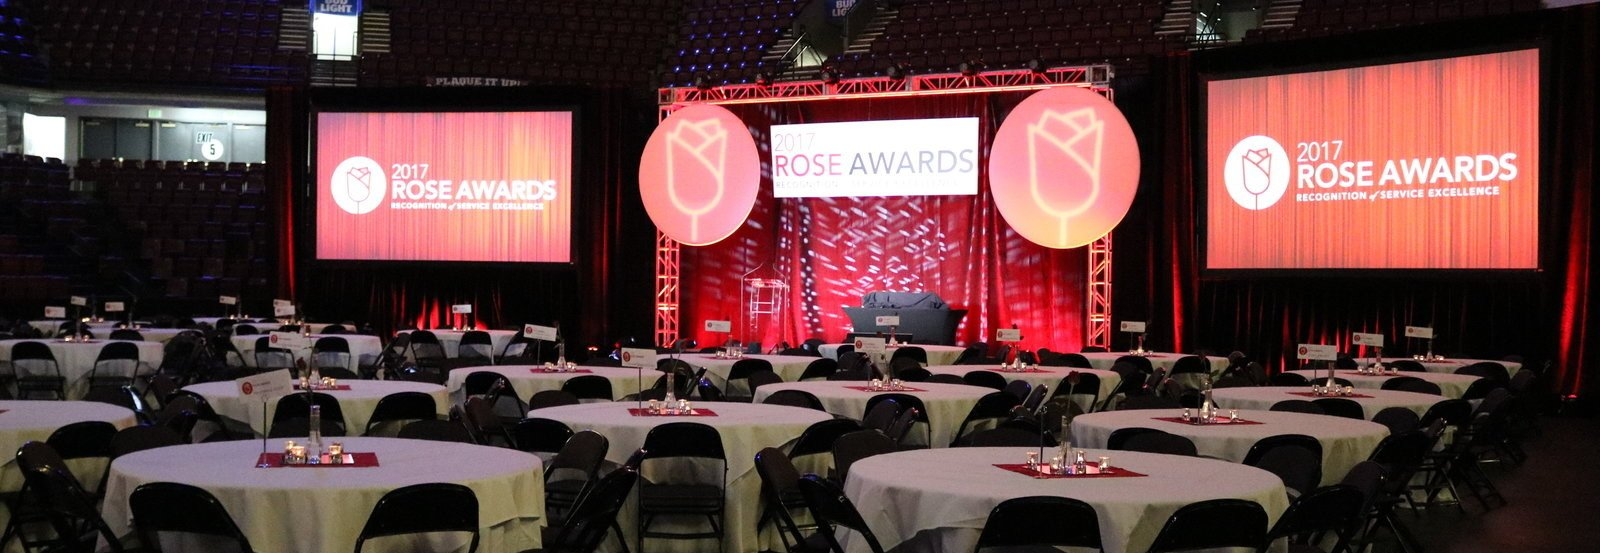 The Rose Awards in CenturyLink Arena